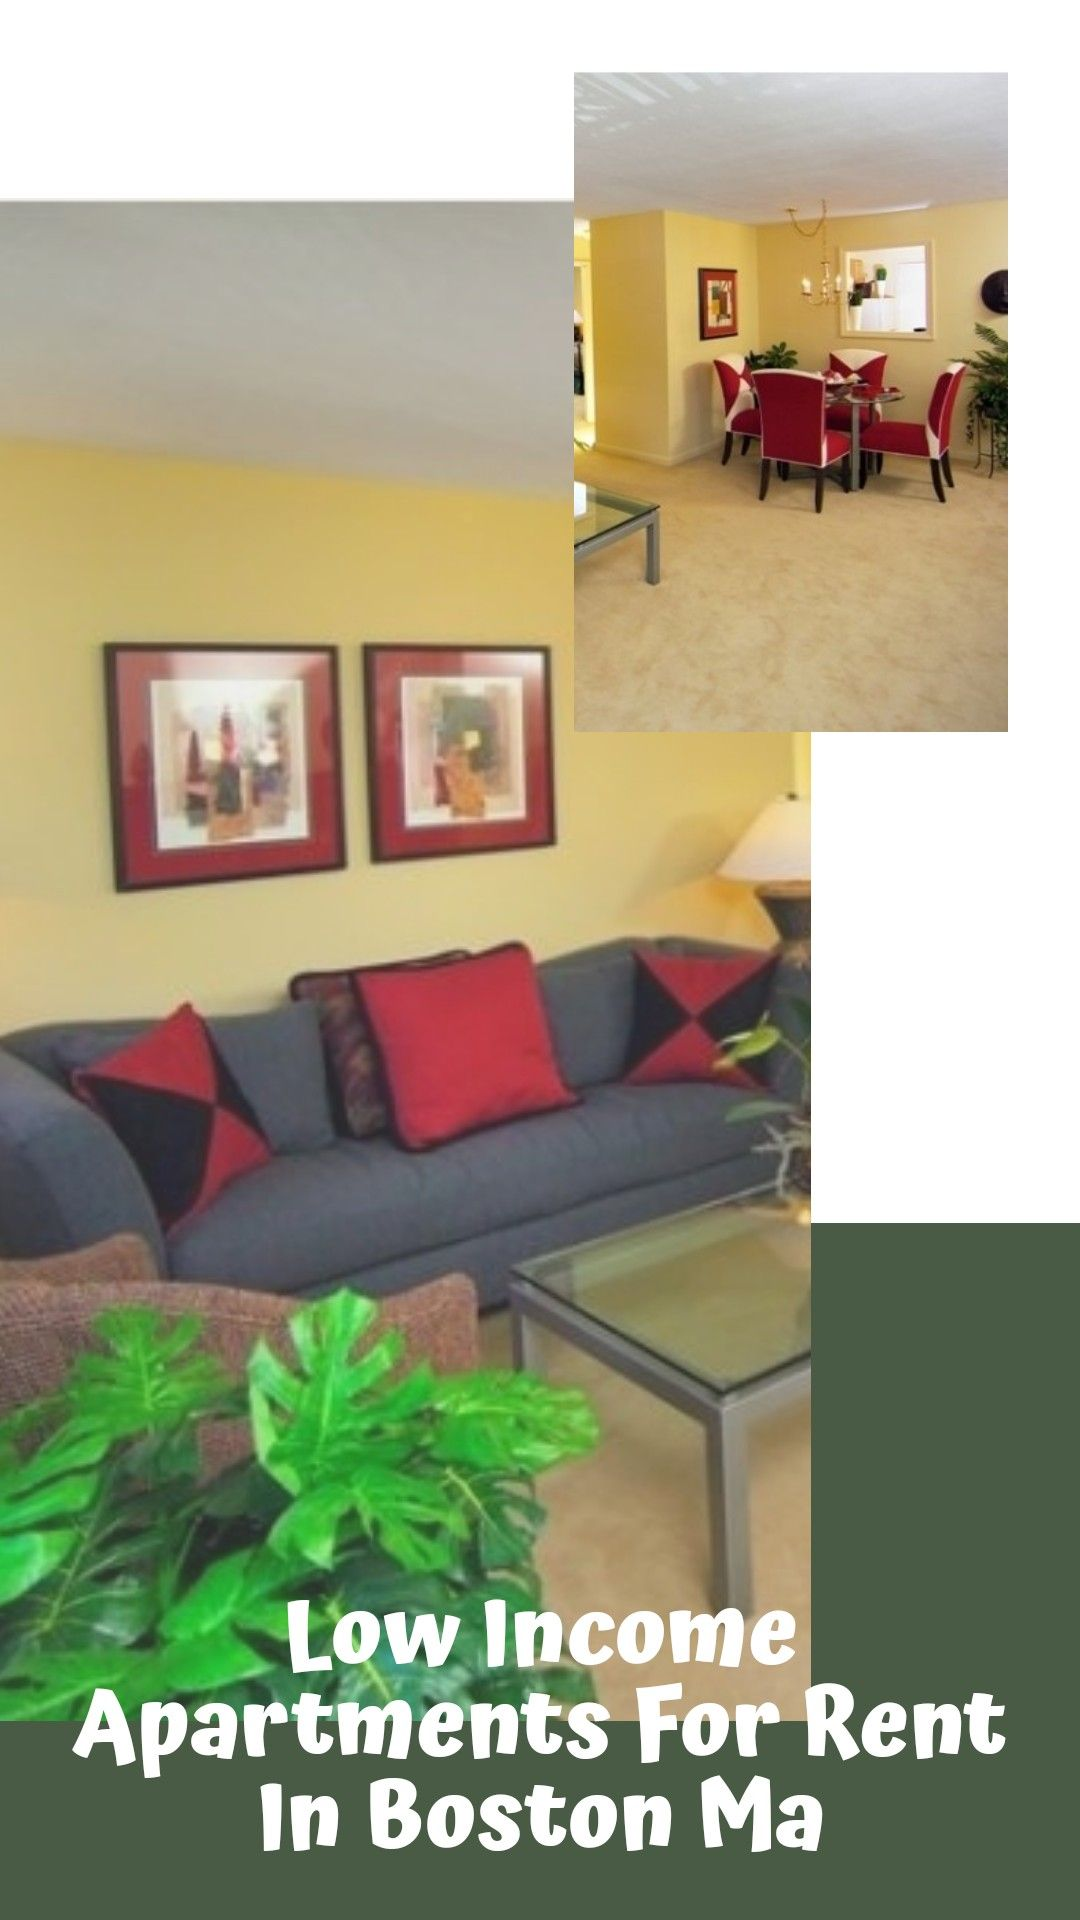 Low Income Apartements For Rent In Boston Ma Cheap Apartment For Rent Furnished Apartments For Rent Low Income Apartments